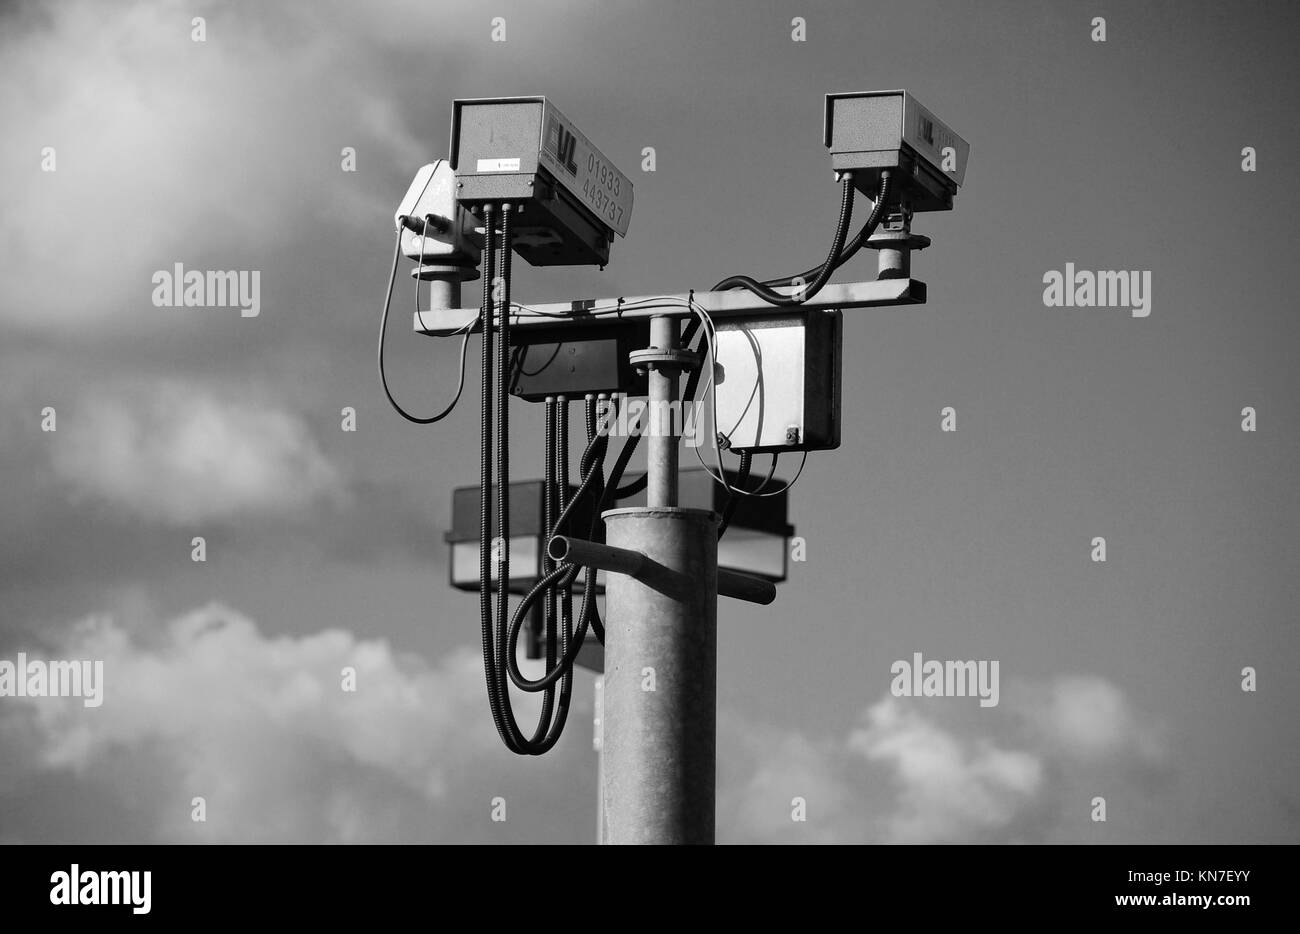 A pair of CCTV cameras on a gantry at Ashford in Kent, England on February 7, 2008. - Stock Image